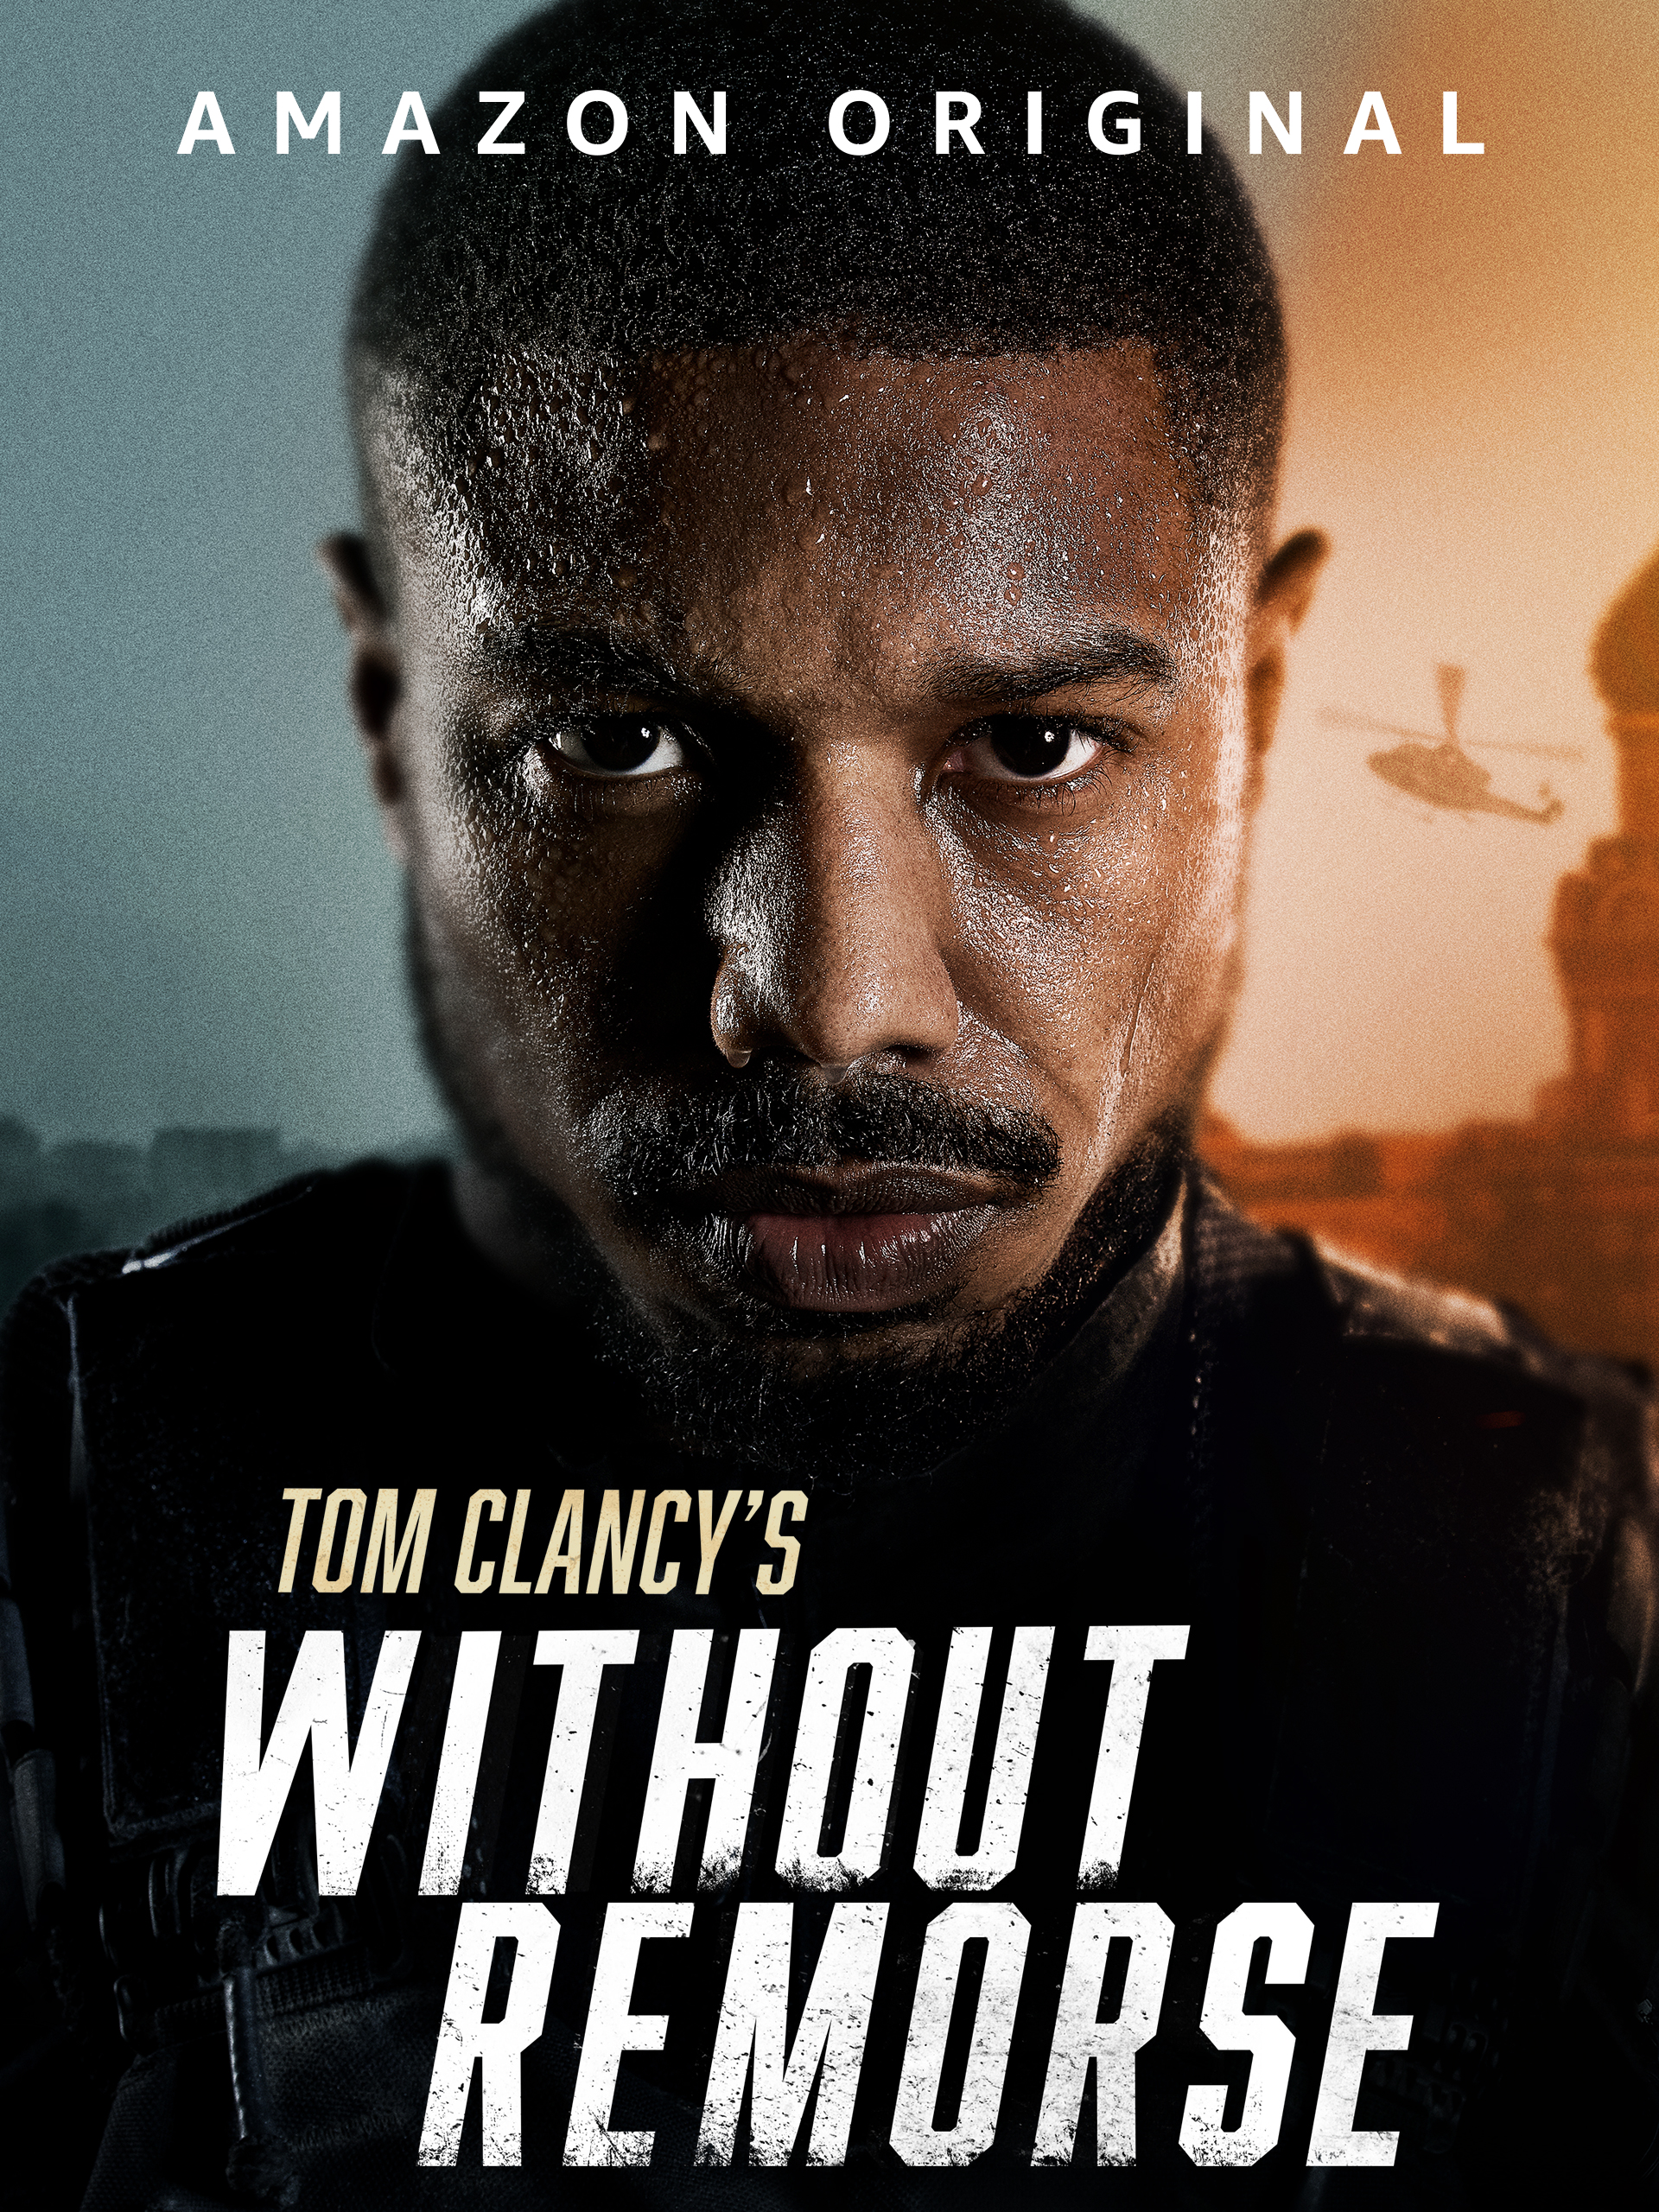 Prime Video: Tom Clancy's Without Remorse